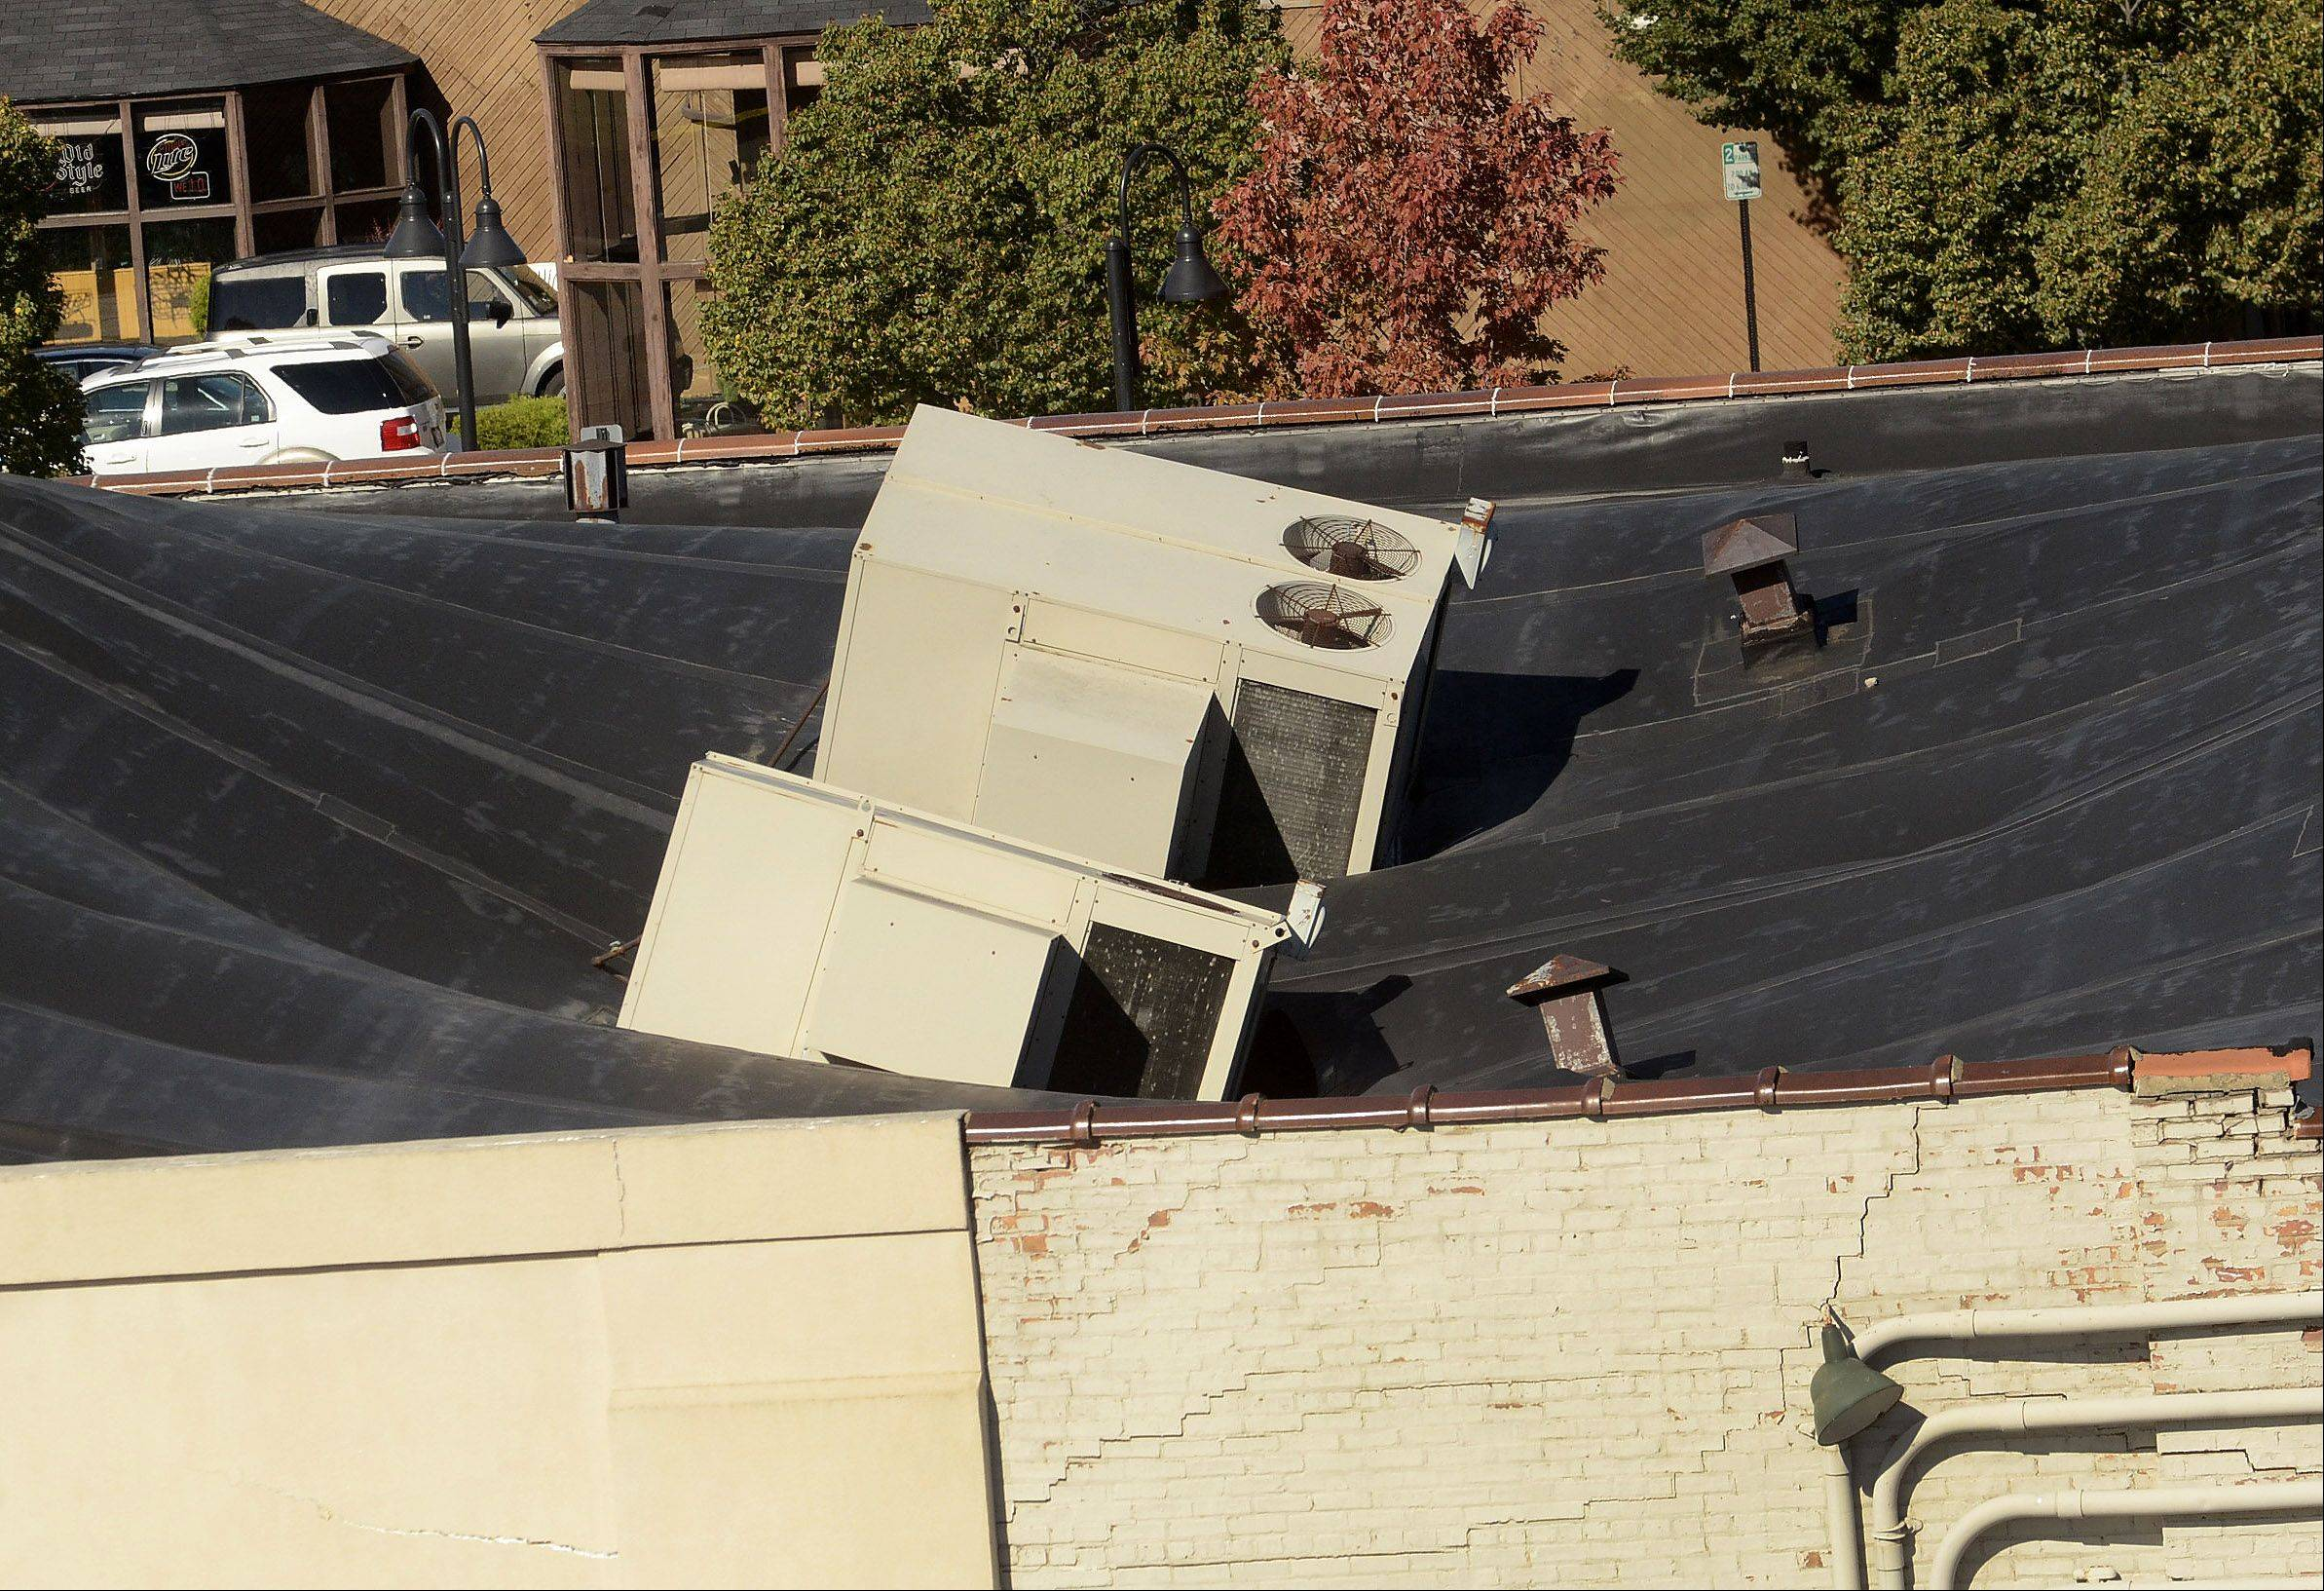 Two air-conditioning units sink into the roof of Tri-State Electronics in Mount Prospect. Crews will be watching today to see if the roof fully collapses.